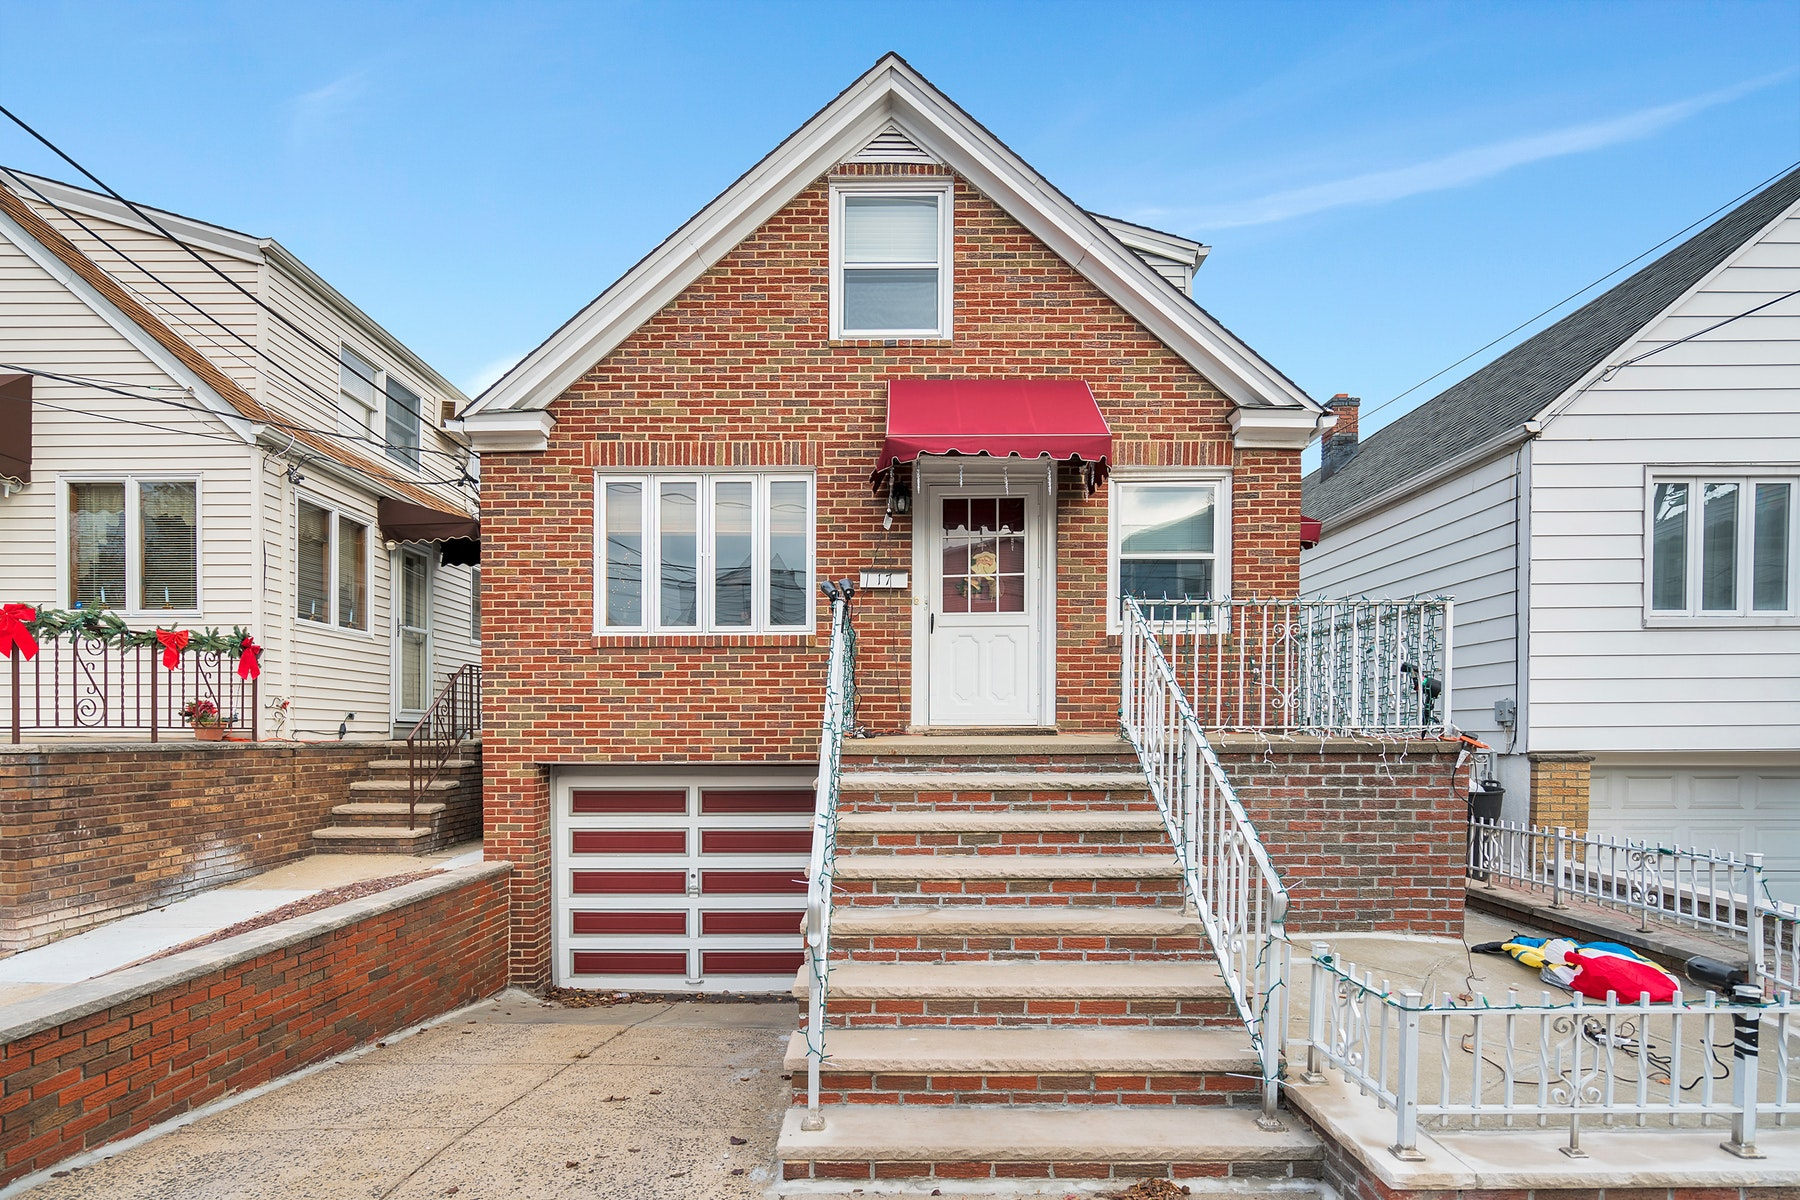 Single Family Home for Sale at Spacious Three Bedroom 17 W 12th Street, Bayonne, New Jersey 07002 United States